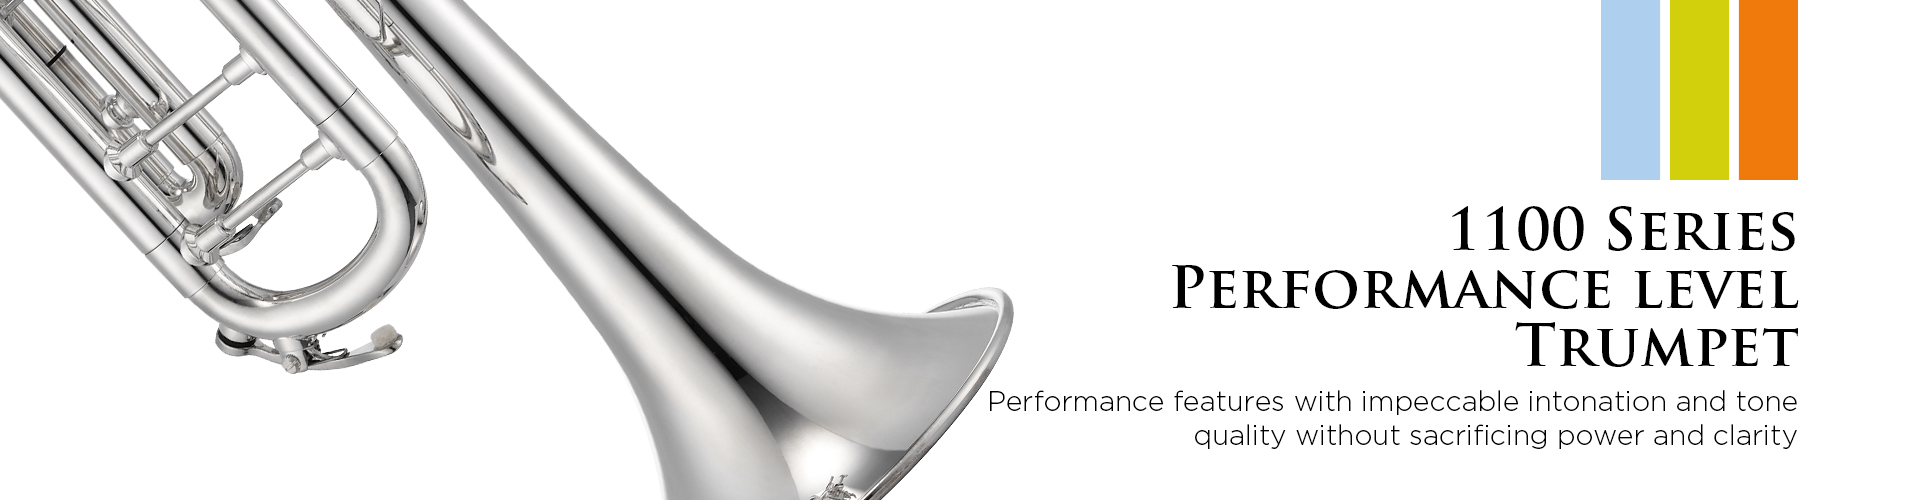 1100 SERIES PERFORMANCE LEVEL TRUMPET